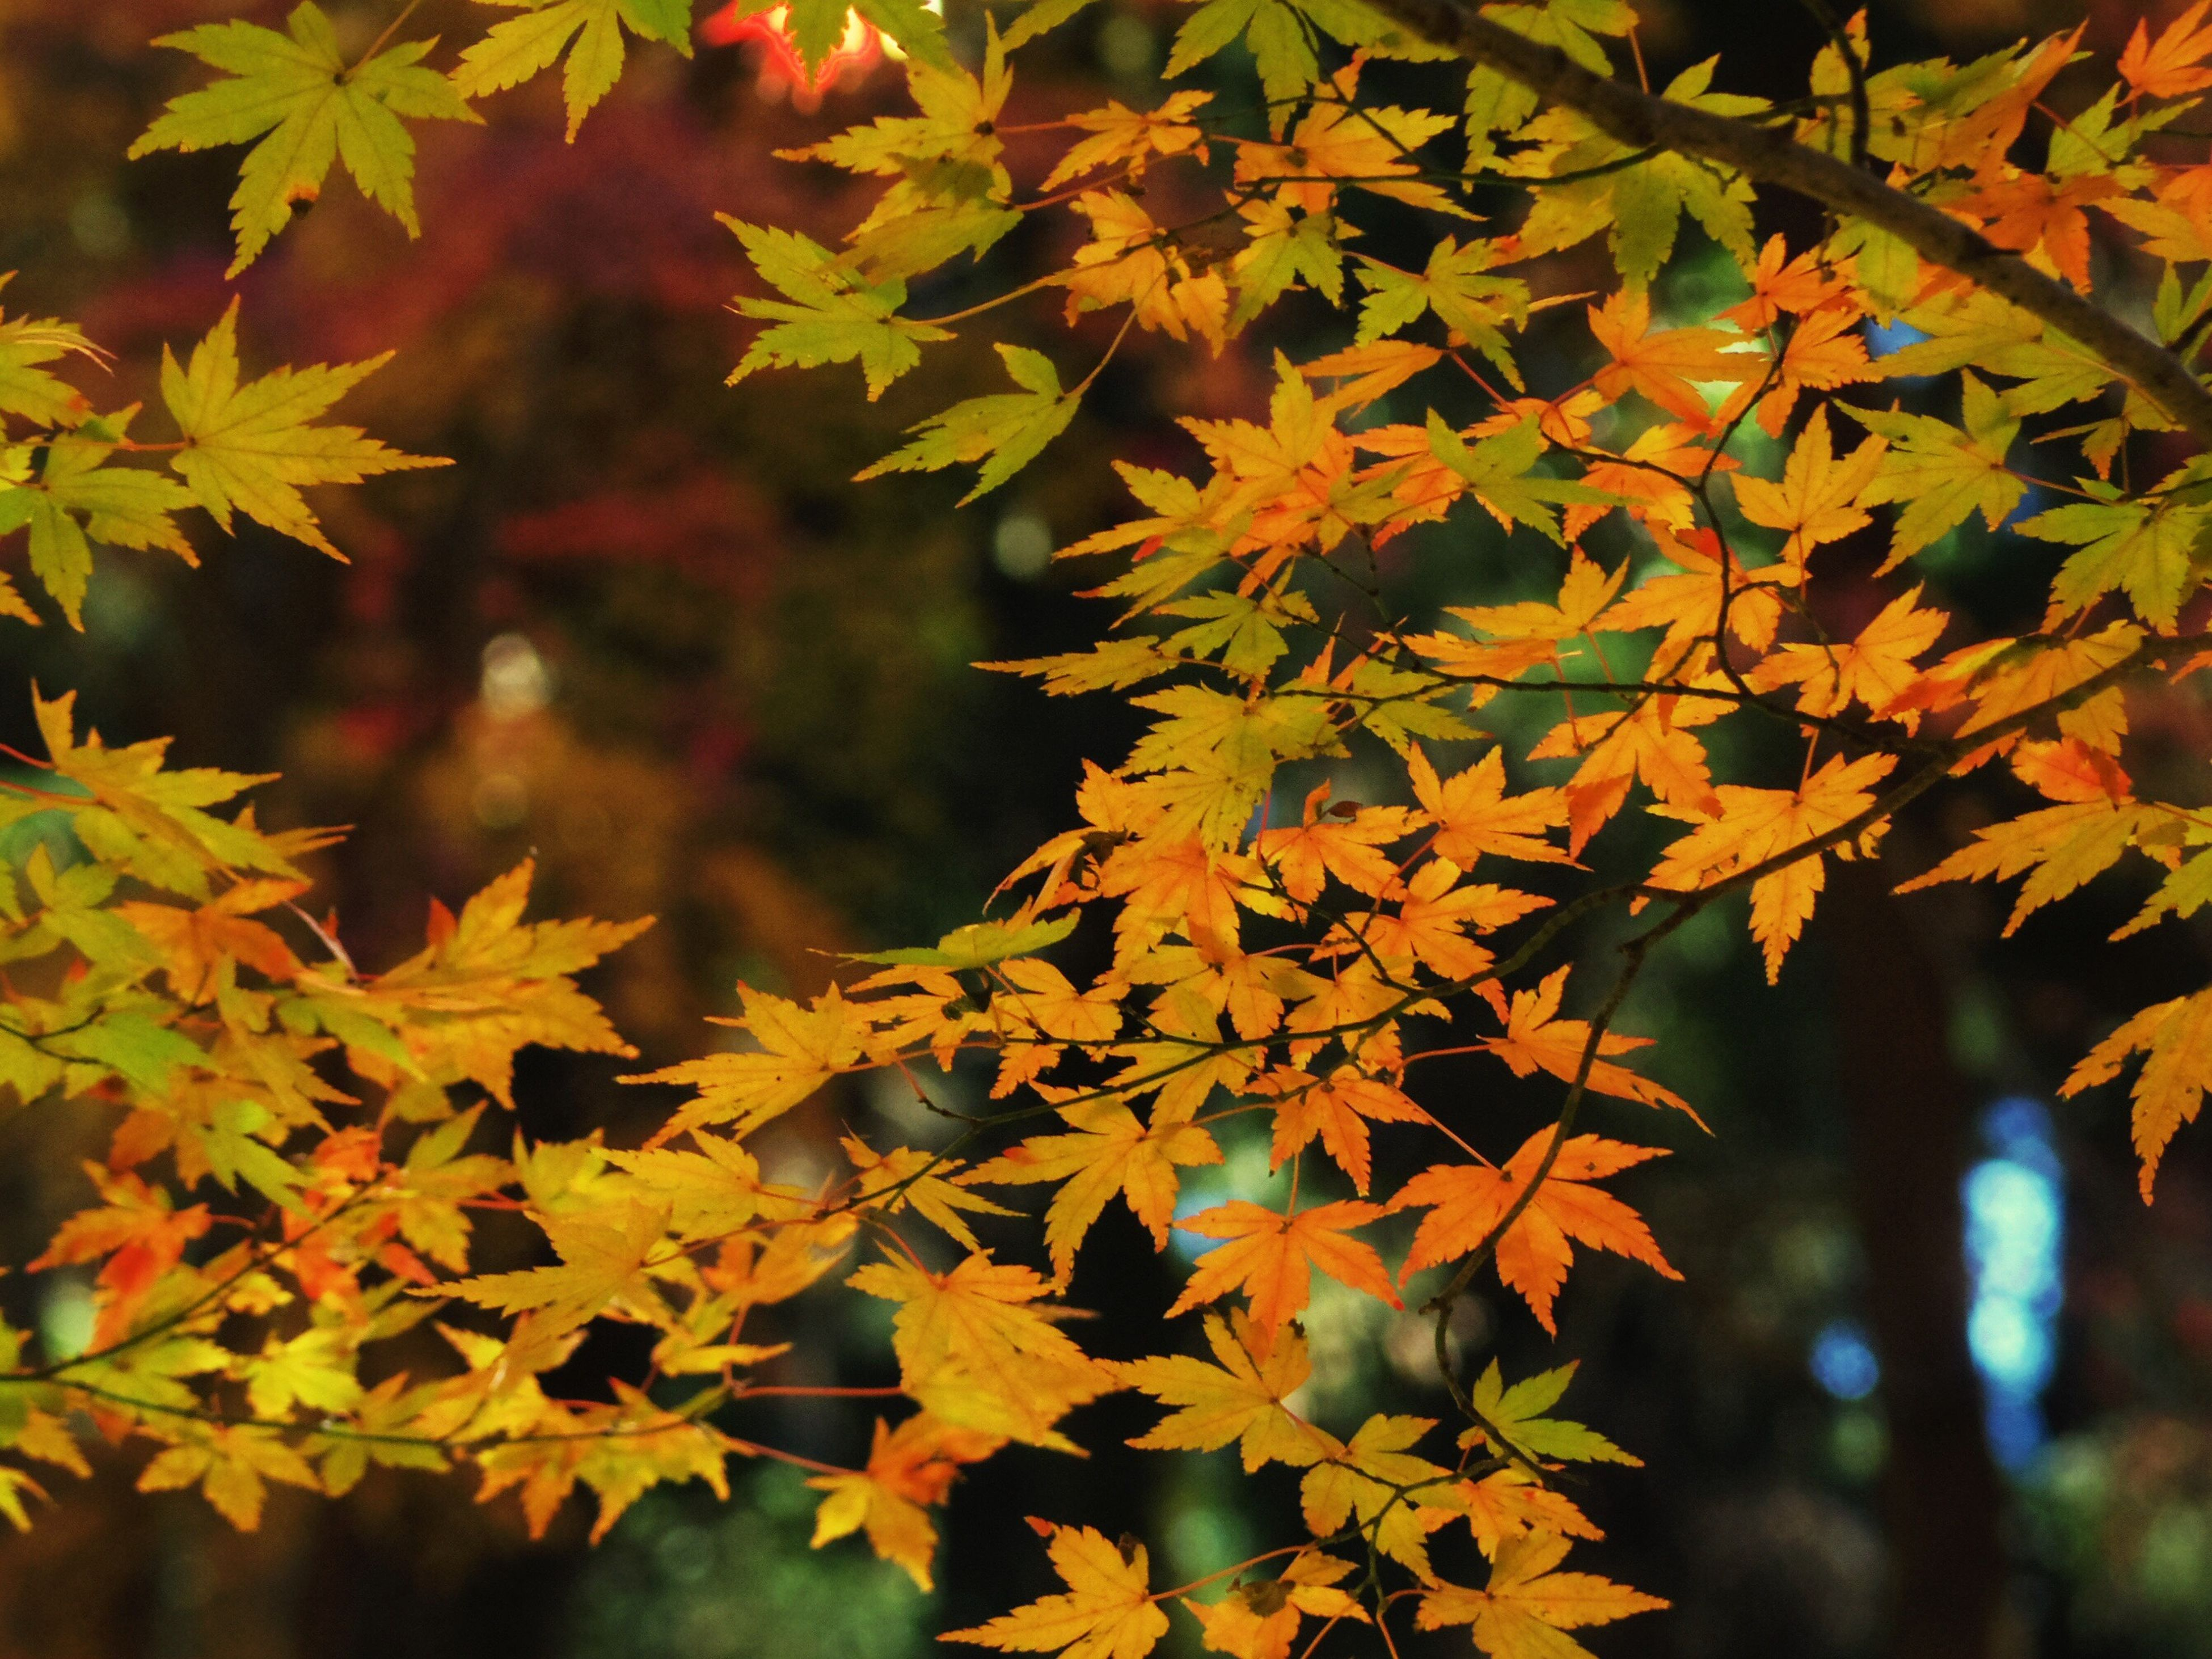 autumn, leaf, change, maple leaf, nature, maple tree, growth, tree, maple, branch, beauty in nature, close-up, no people, outdoors, leaves, yellow, day